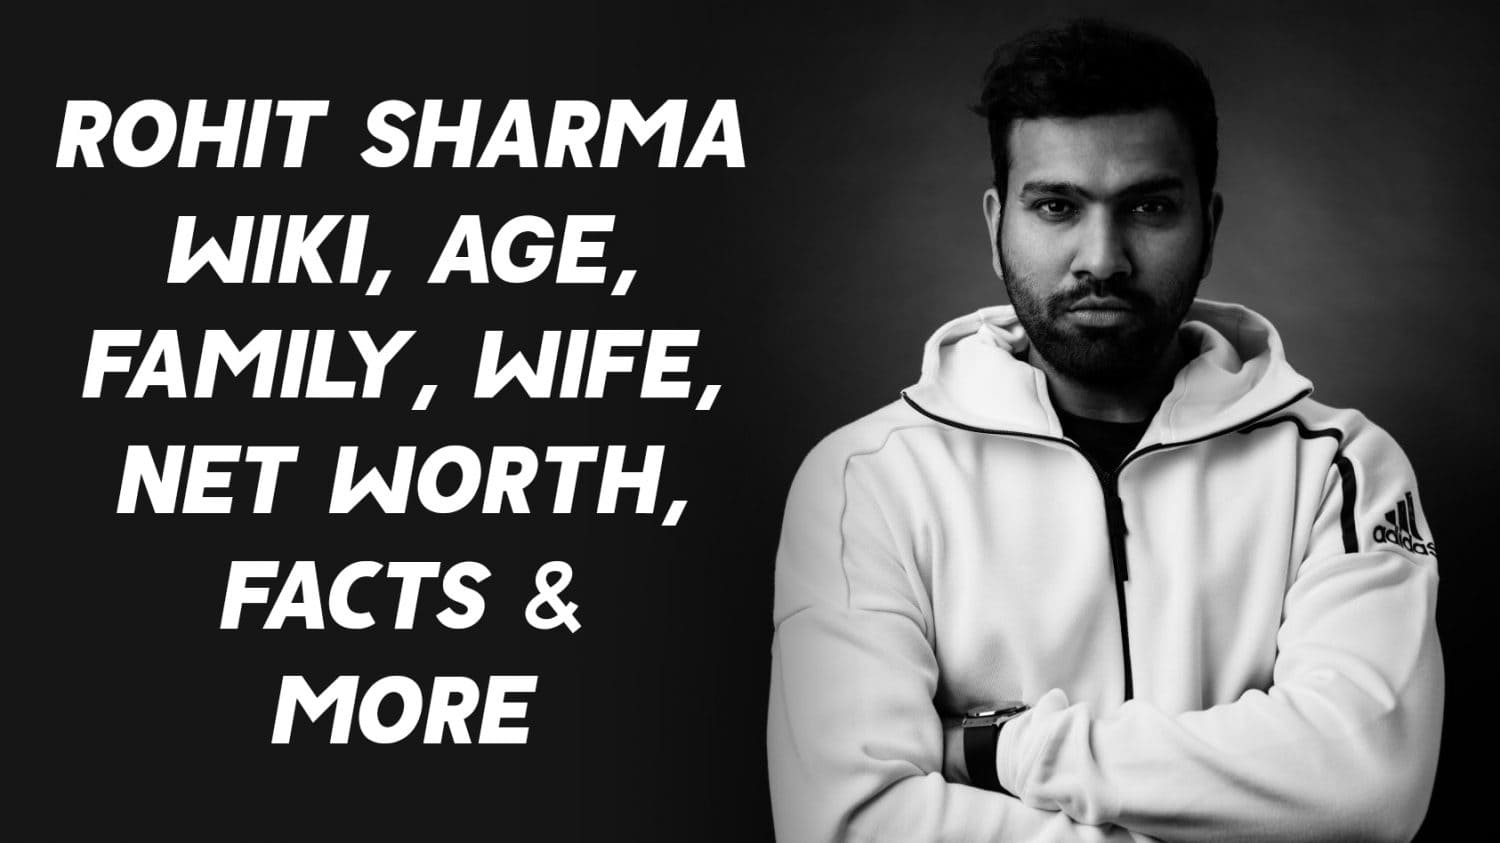 Rohit Sharma Wiki, Age, Family, Wife, Net Worth, Facts & More 1